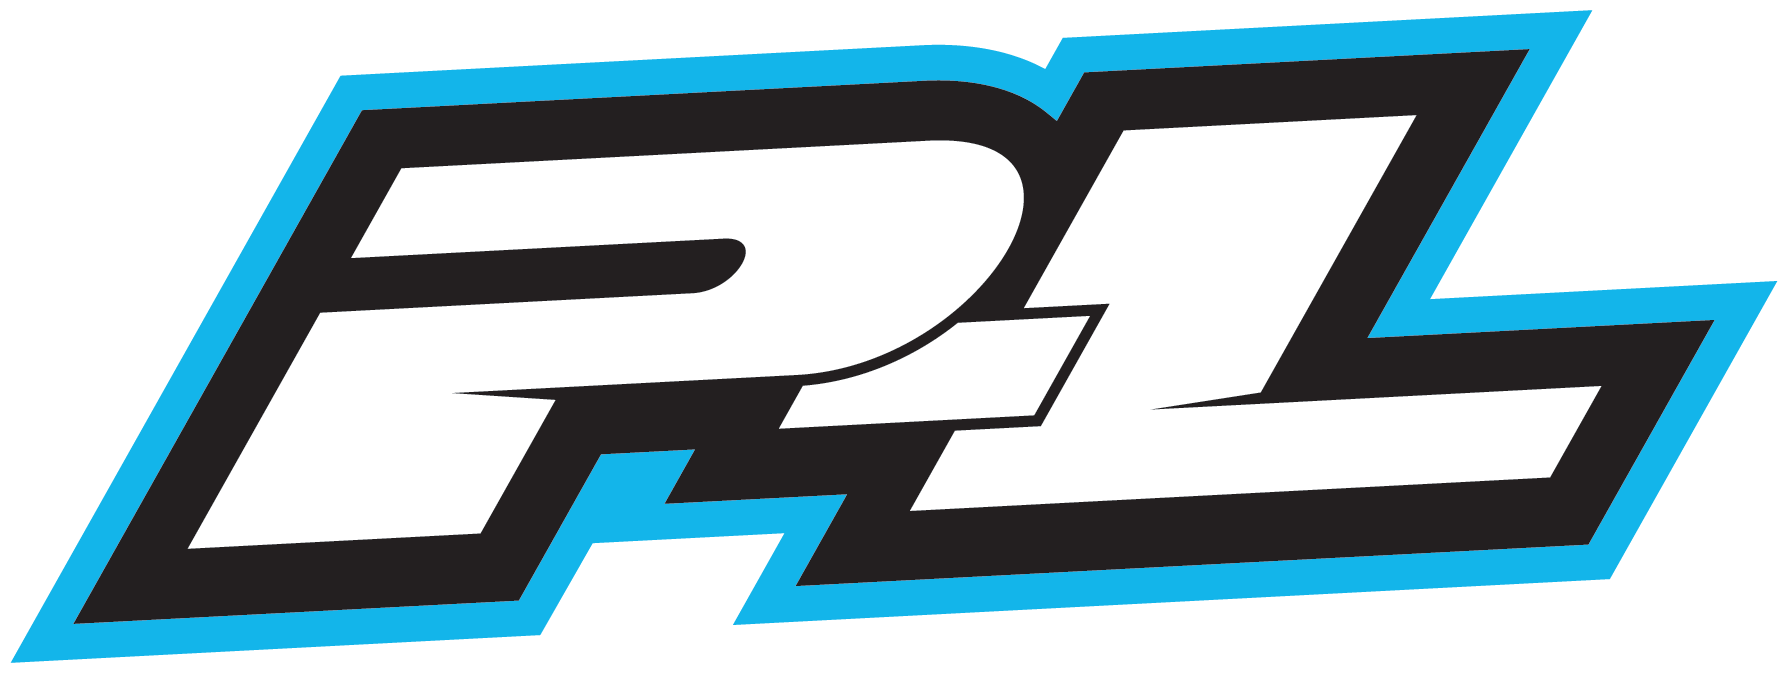 Prolineracing p l logo. Waves clipart wipeout